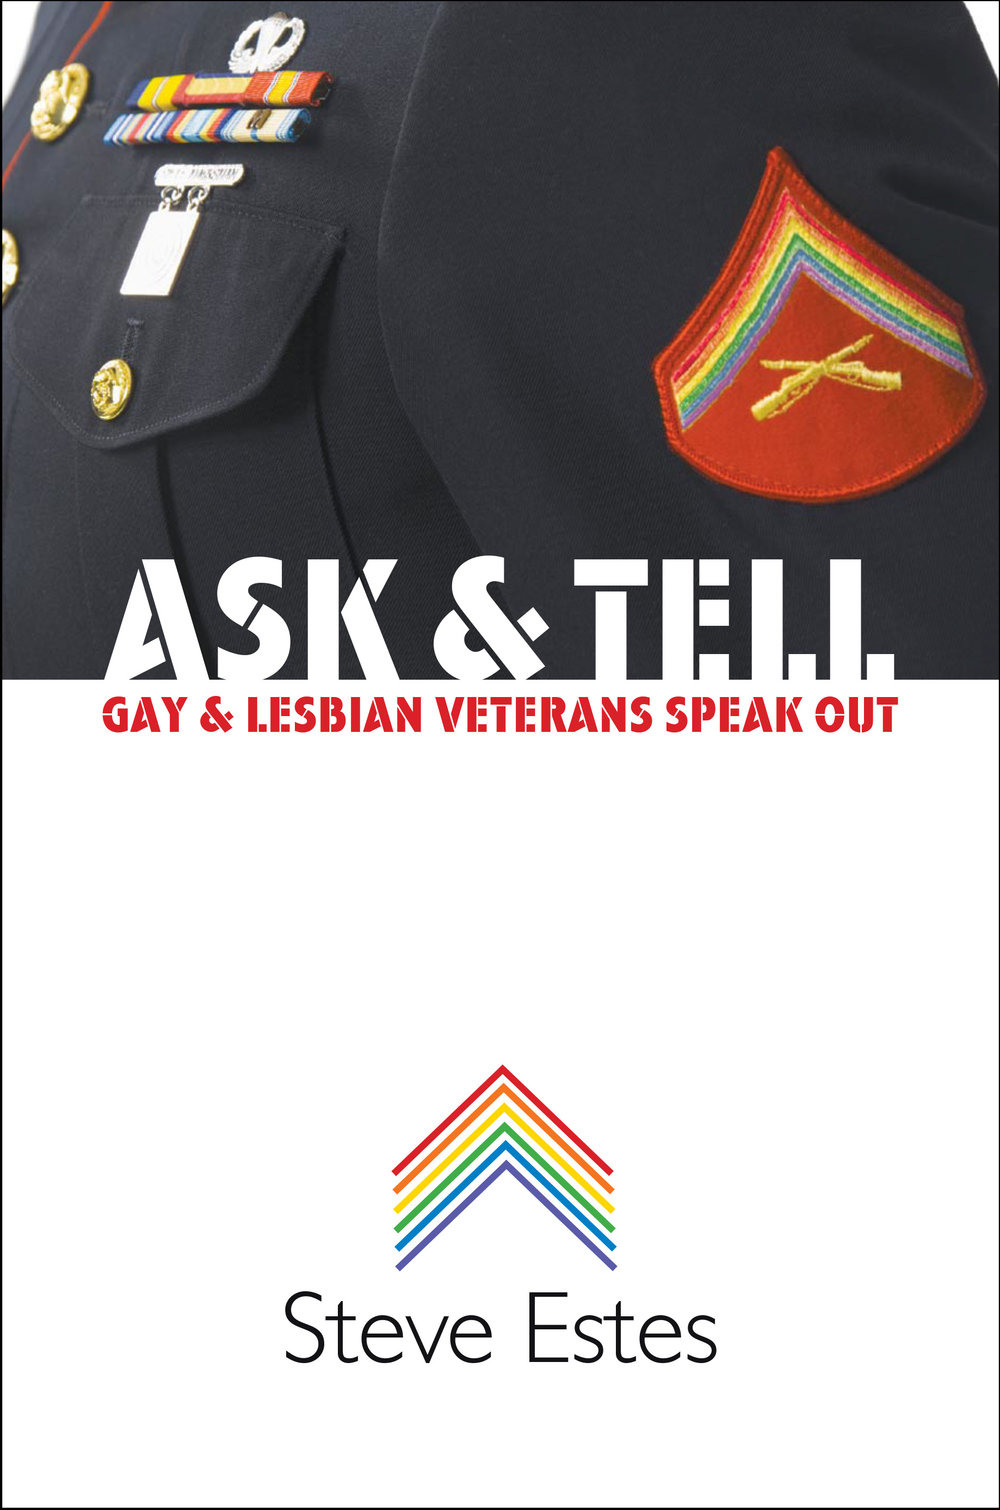 Ask and Tell - Gay Veterans Speak Out - Local actors will be giving voice to the real stories of two gay veterans from Santa Rosa and San Francisco. The script is verbatim oral historical testimony as recorded by Professor Steve Estes at Sonoma State University. The two people share similar struggles and experiences, yet different perspectives and worldview. These are two compelling stories of confronting self-denial and systemic bigotry against the backdrop of self-sacrifice in service of country.Ask and Tell is an important compilation more than 50 interviews with gay and lesbian veterans, offering Americans a new understanding of the value of all the men and women who serve and protect them.